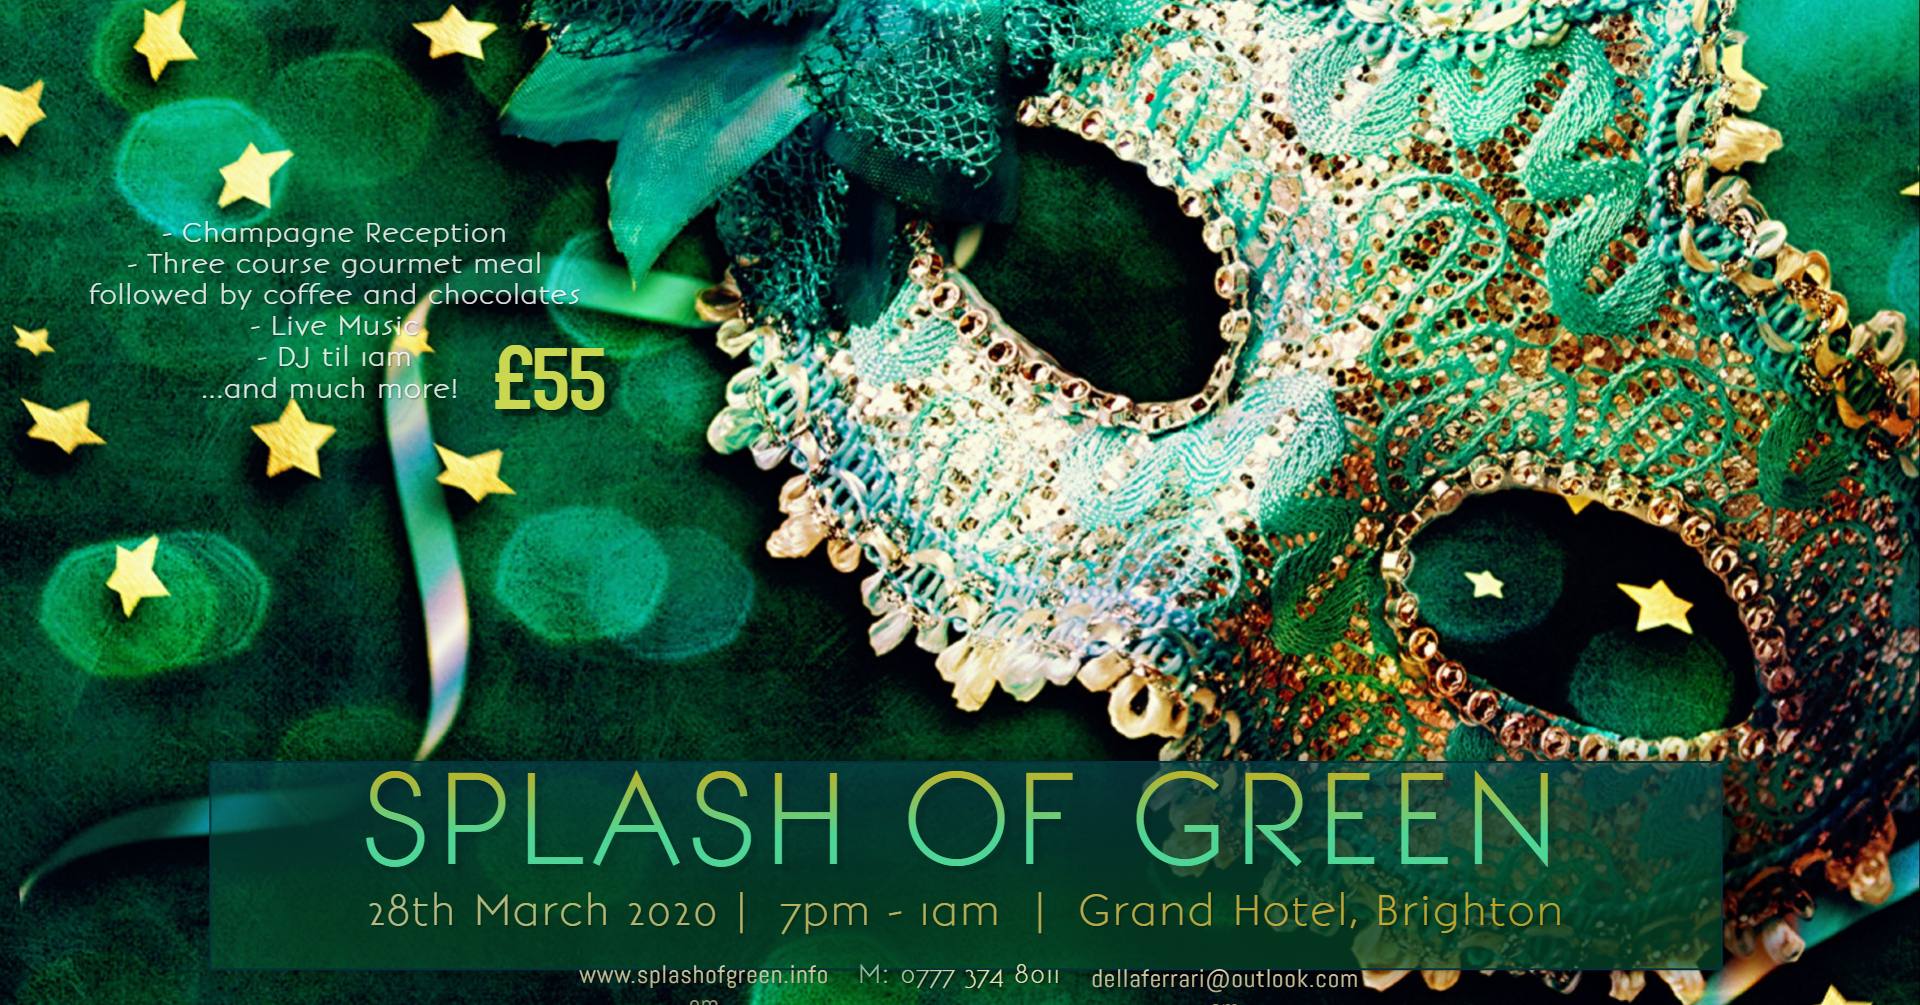 come along and support our 2020 event. Get in touch and buy your ticket today  www.splashofgreen.info